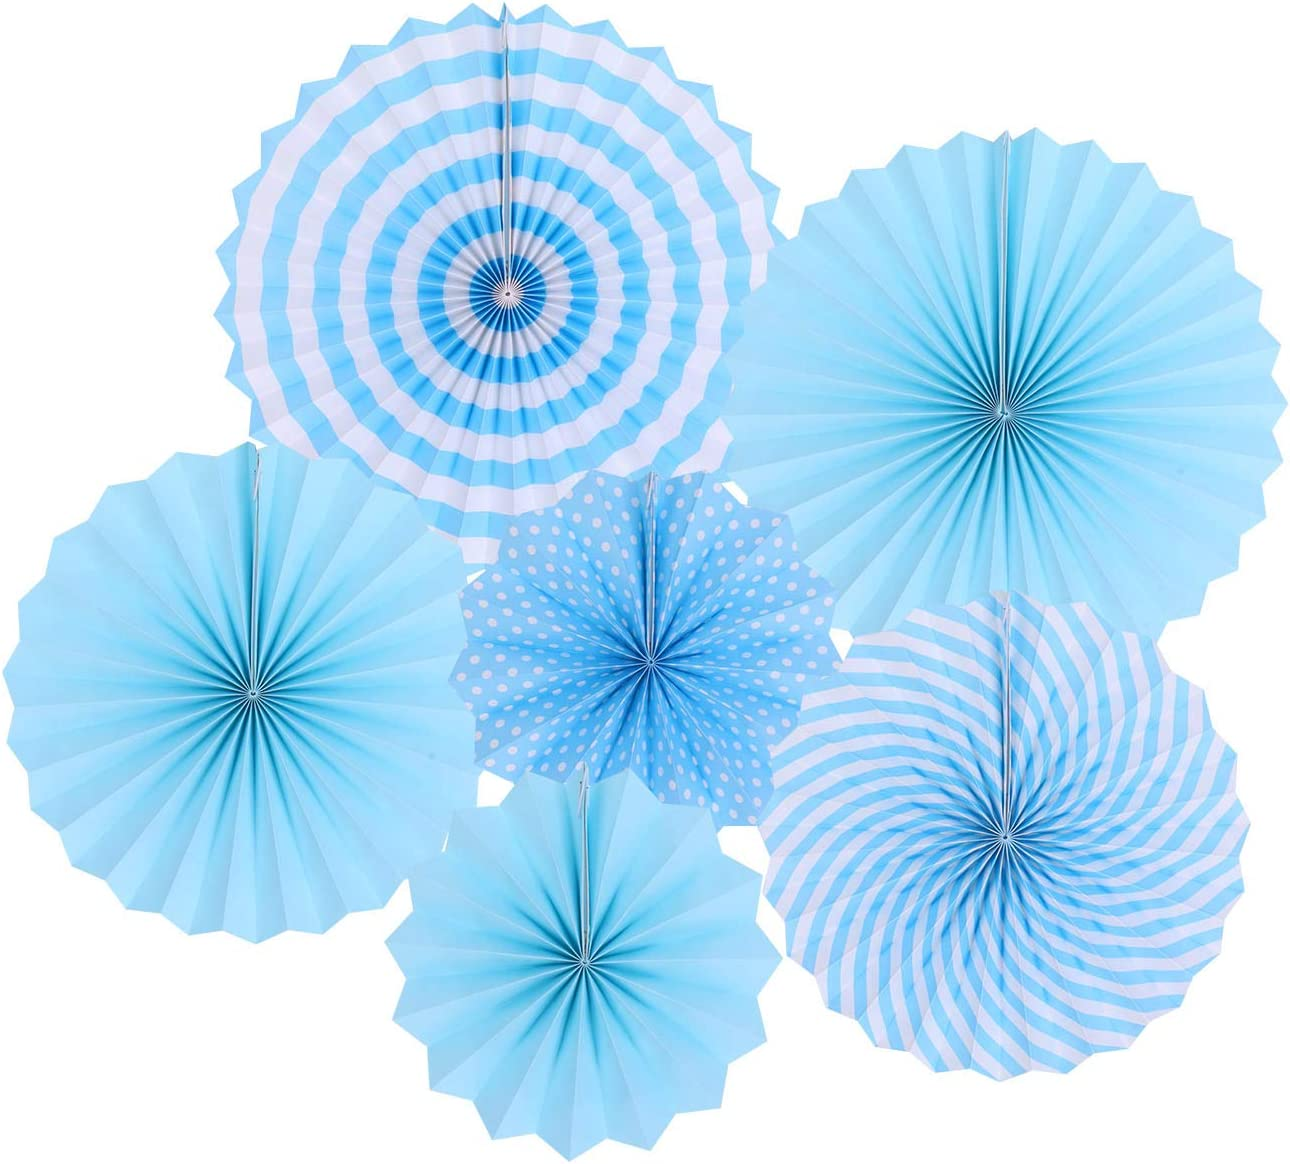 zilue Hanging Blue Paper Fans Decoration Kit Round Paper Garlands for Wedding Birthday Party Baby Showers Events Accessories Set of 6